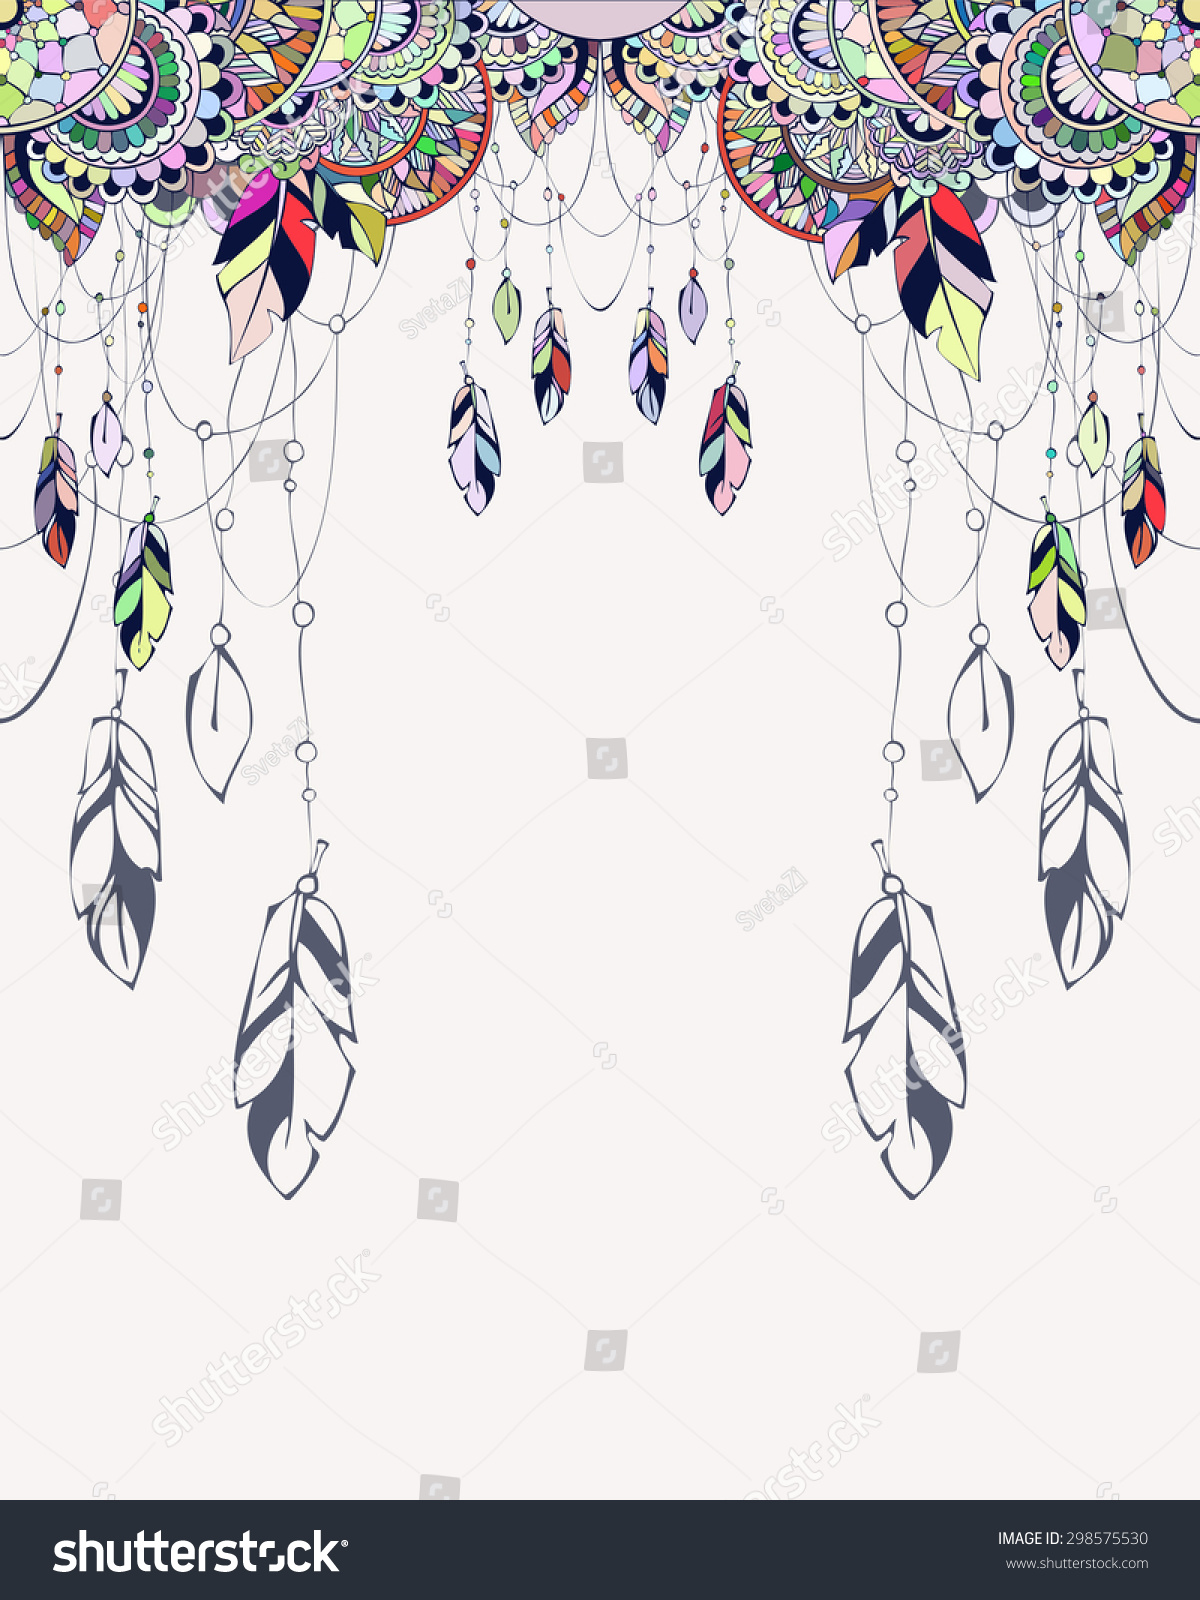 Vector Templates In Boho Style Can Be Used As Invitations Greeting Cards Graphic